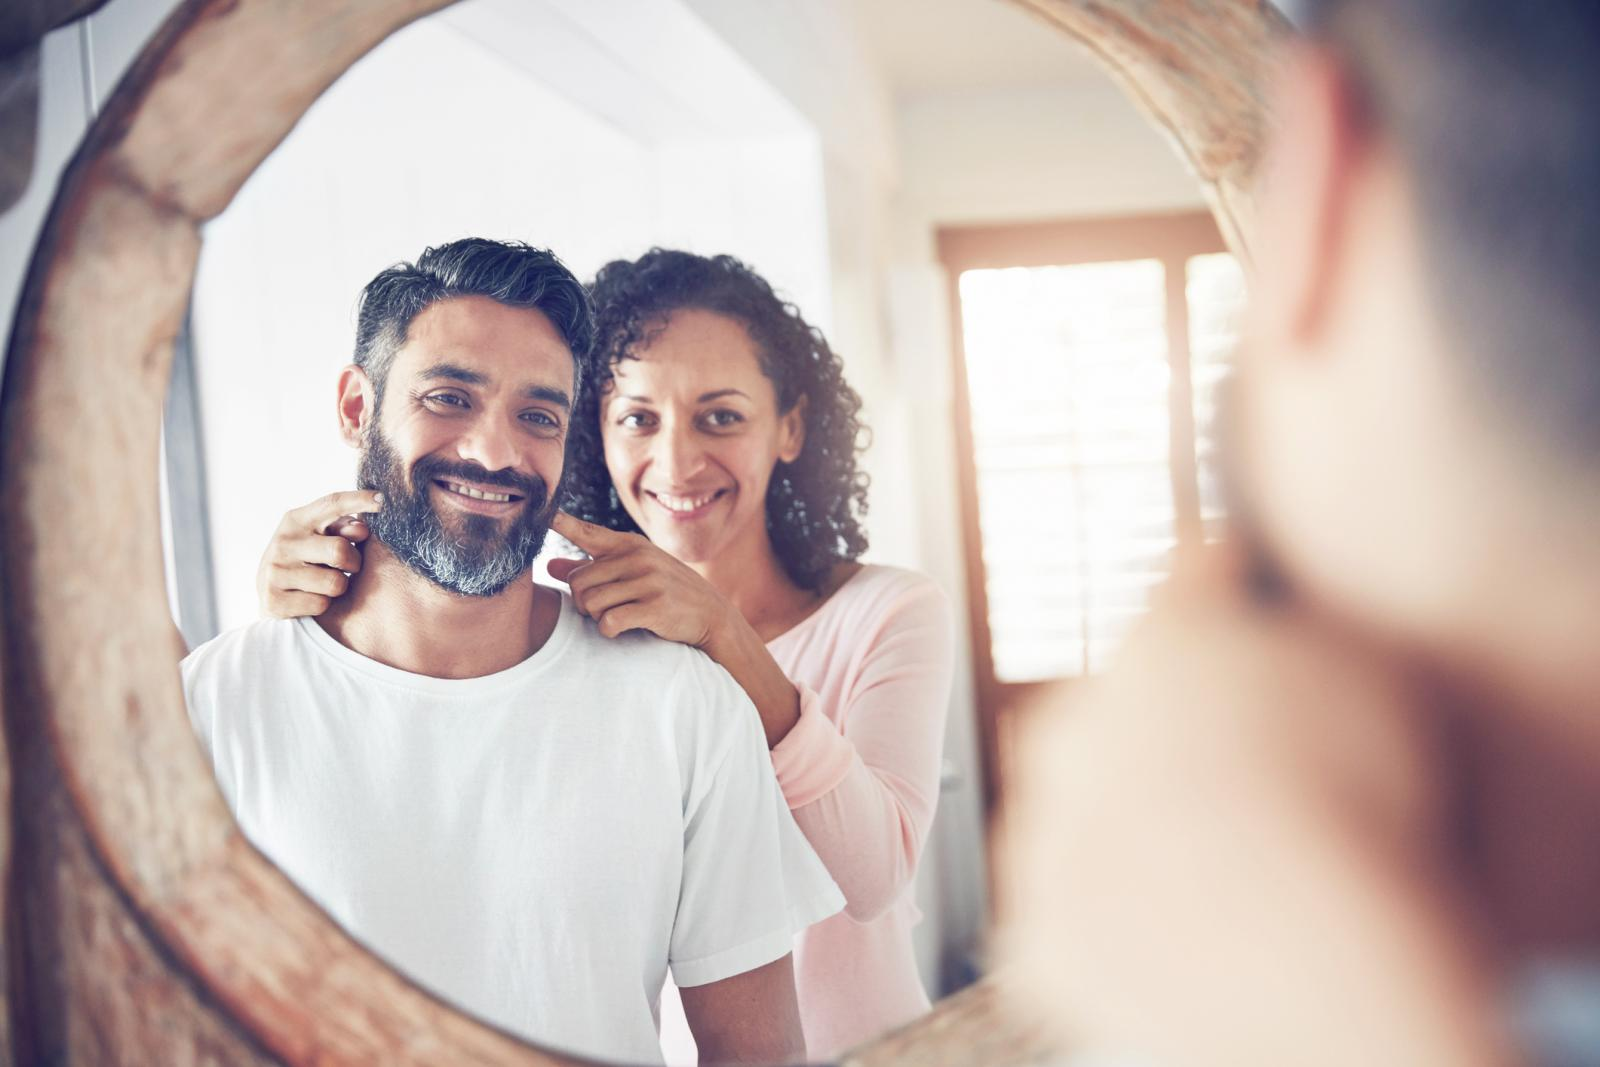 Shot of a mature man looking at his reflection in the mirror with his wife encouraging him to smile